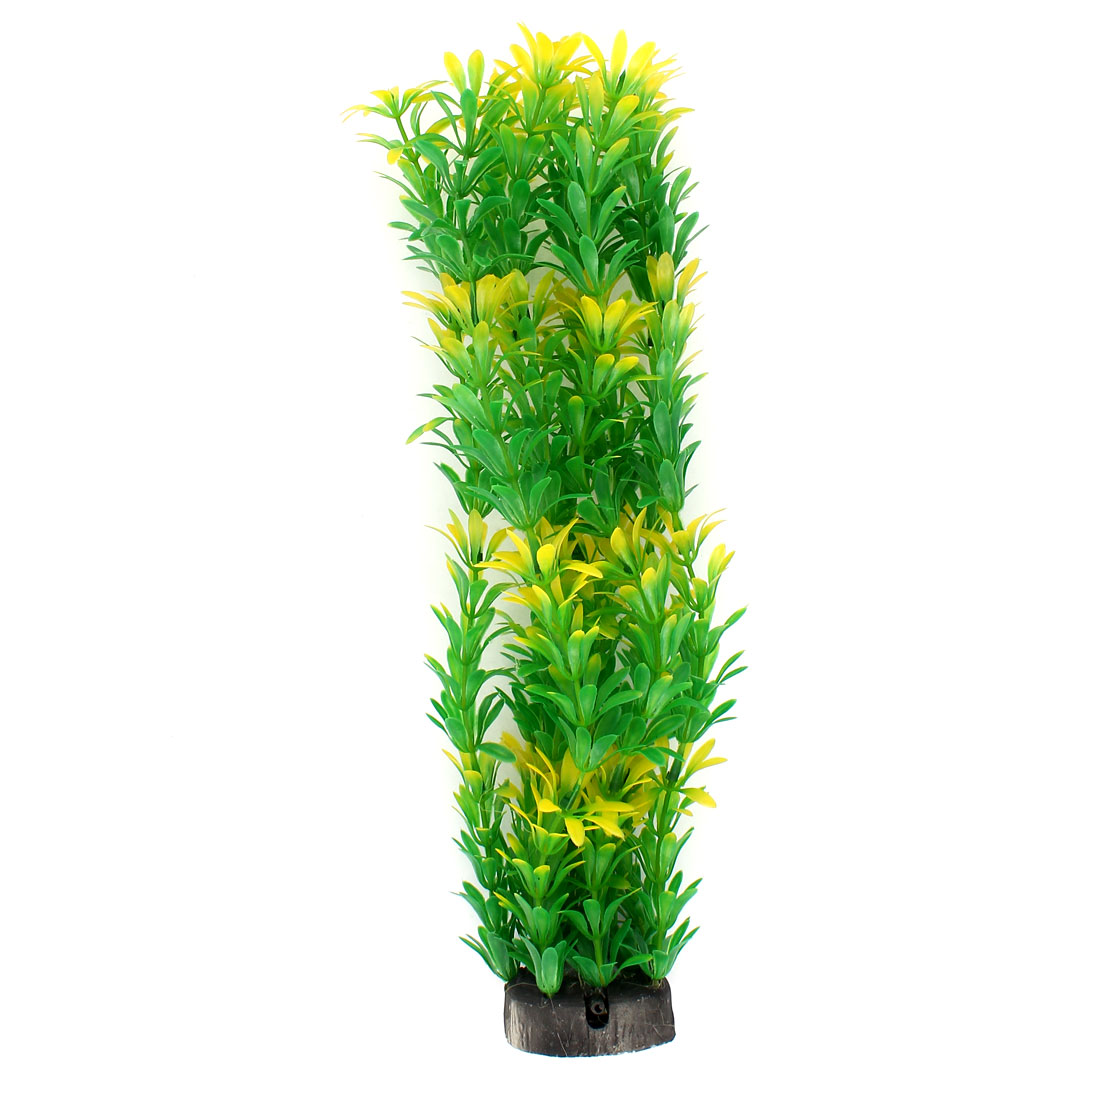 Fish Tank Manmade Plastic Decor Underwater Aquaric Plant Grass 32cm High